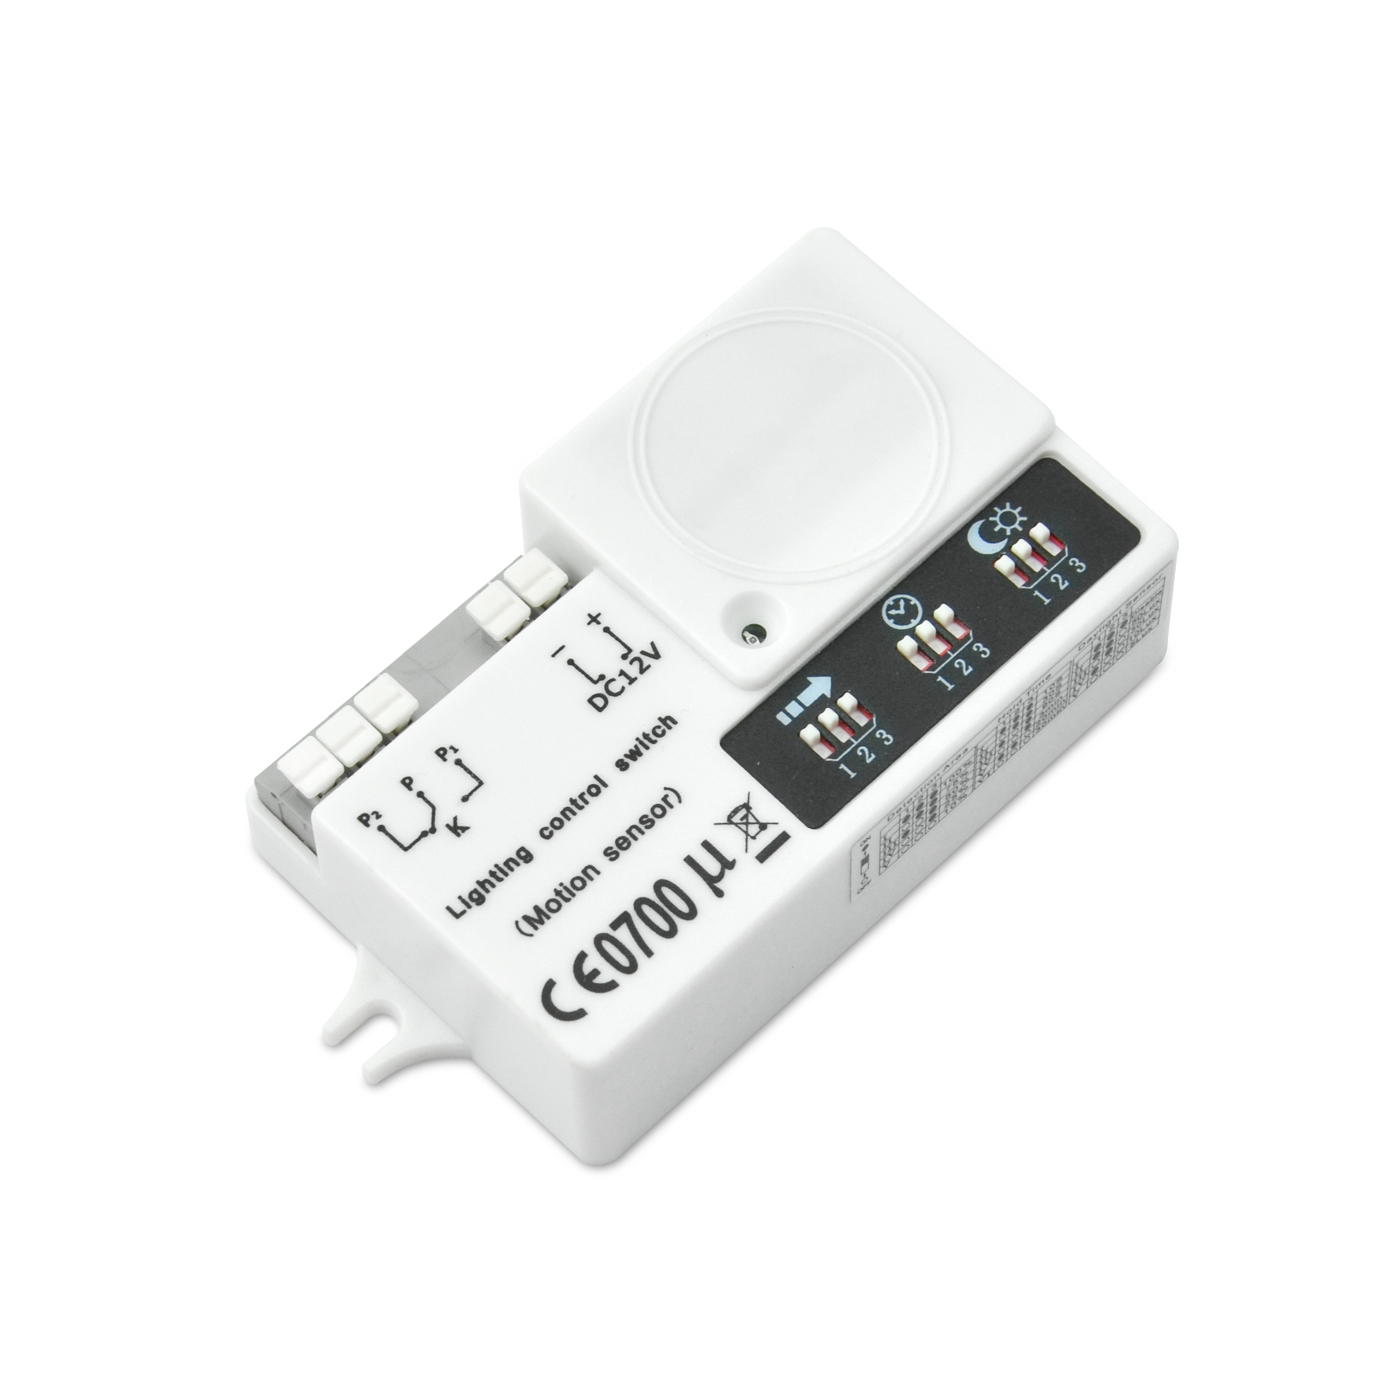 Good Quality 45w 12v Power Led Driver - [out of stock]12VDC dry contact motion detector – Euchips